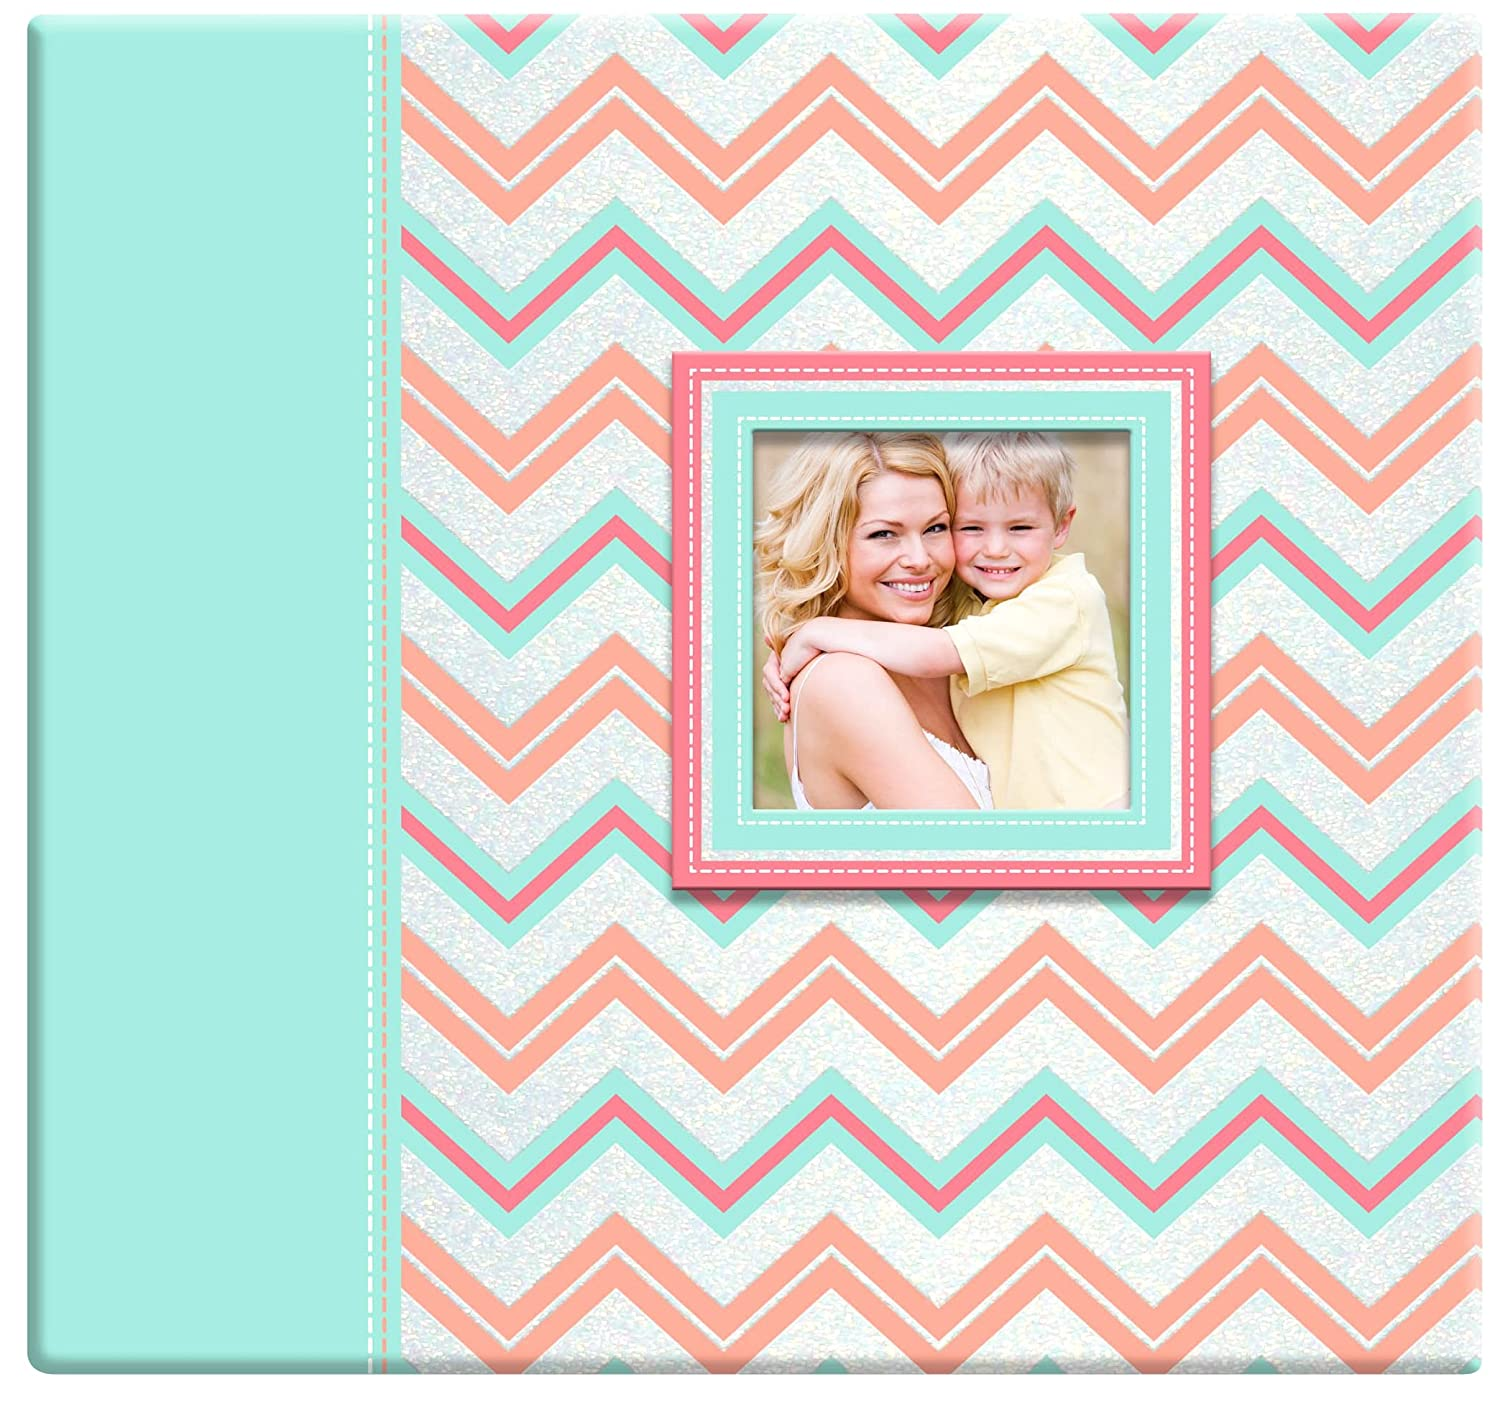 MCS 860116 Pastel Glitter Chevron Scrapbook Album with 12x12 Top Load Pages MCS Industries